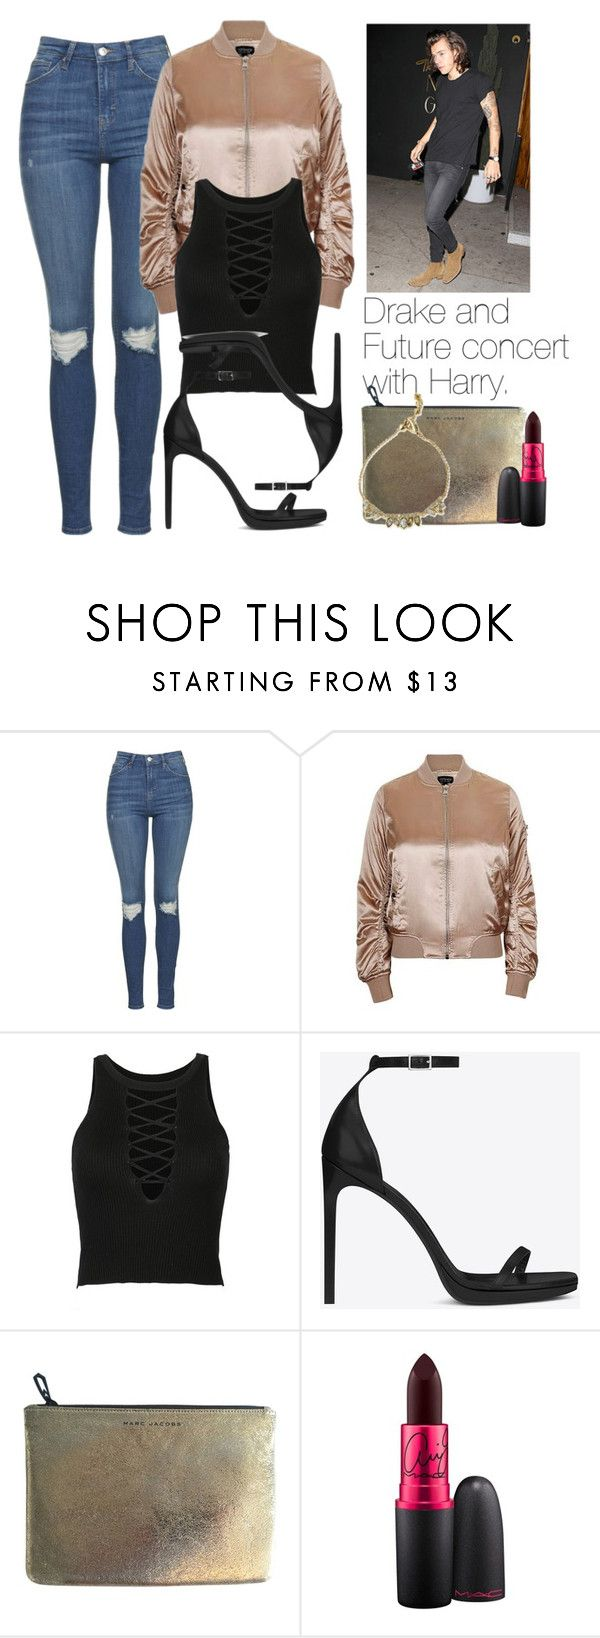 """Drake and Future concert with Harry."" by fireproofnarry ❤ liked on Polyvore featuring Topshop, Yves Saint Laurent, Marc Jacobs, MAC Cosmetics and Alexis Bittar"